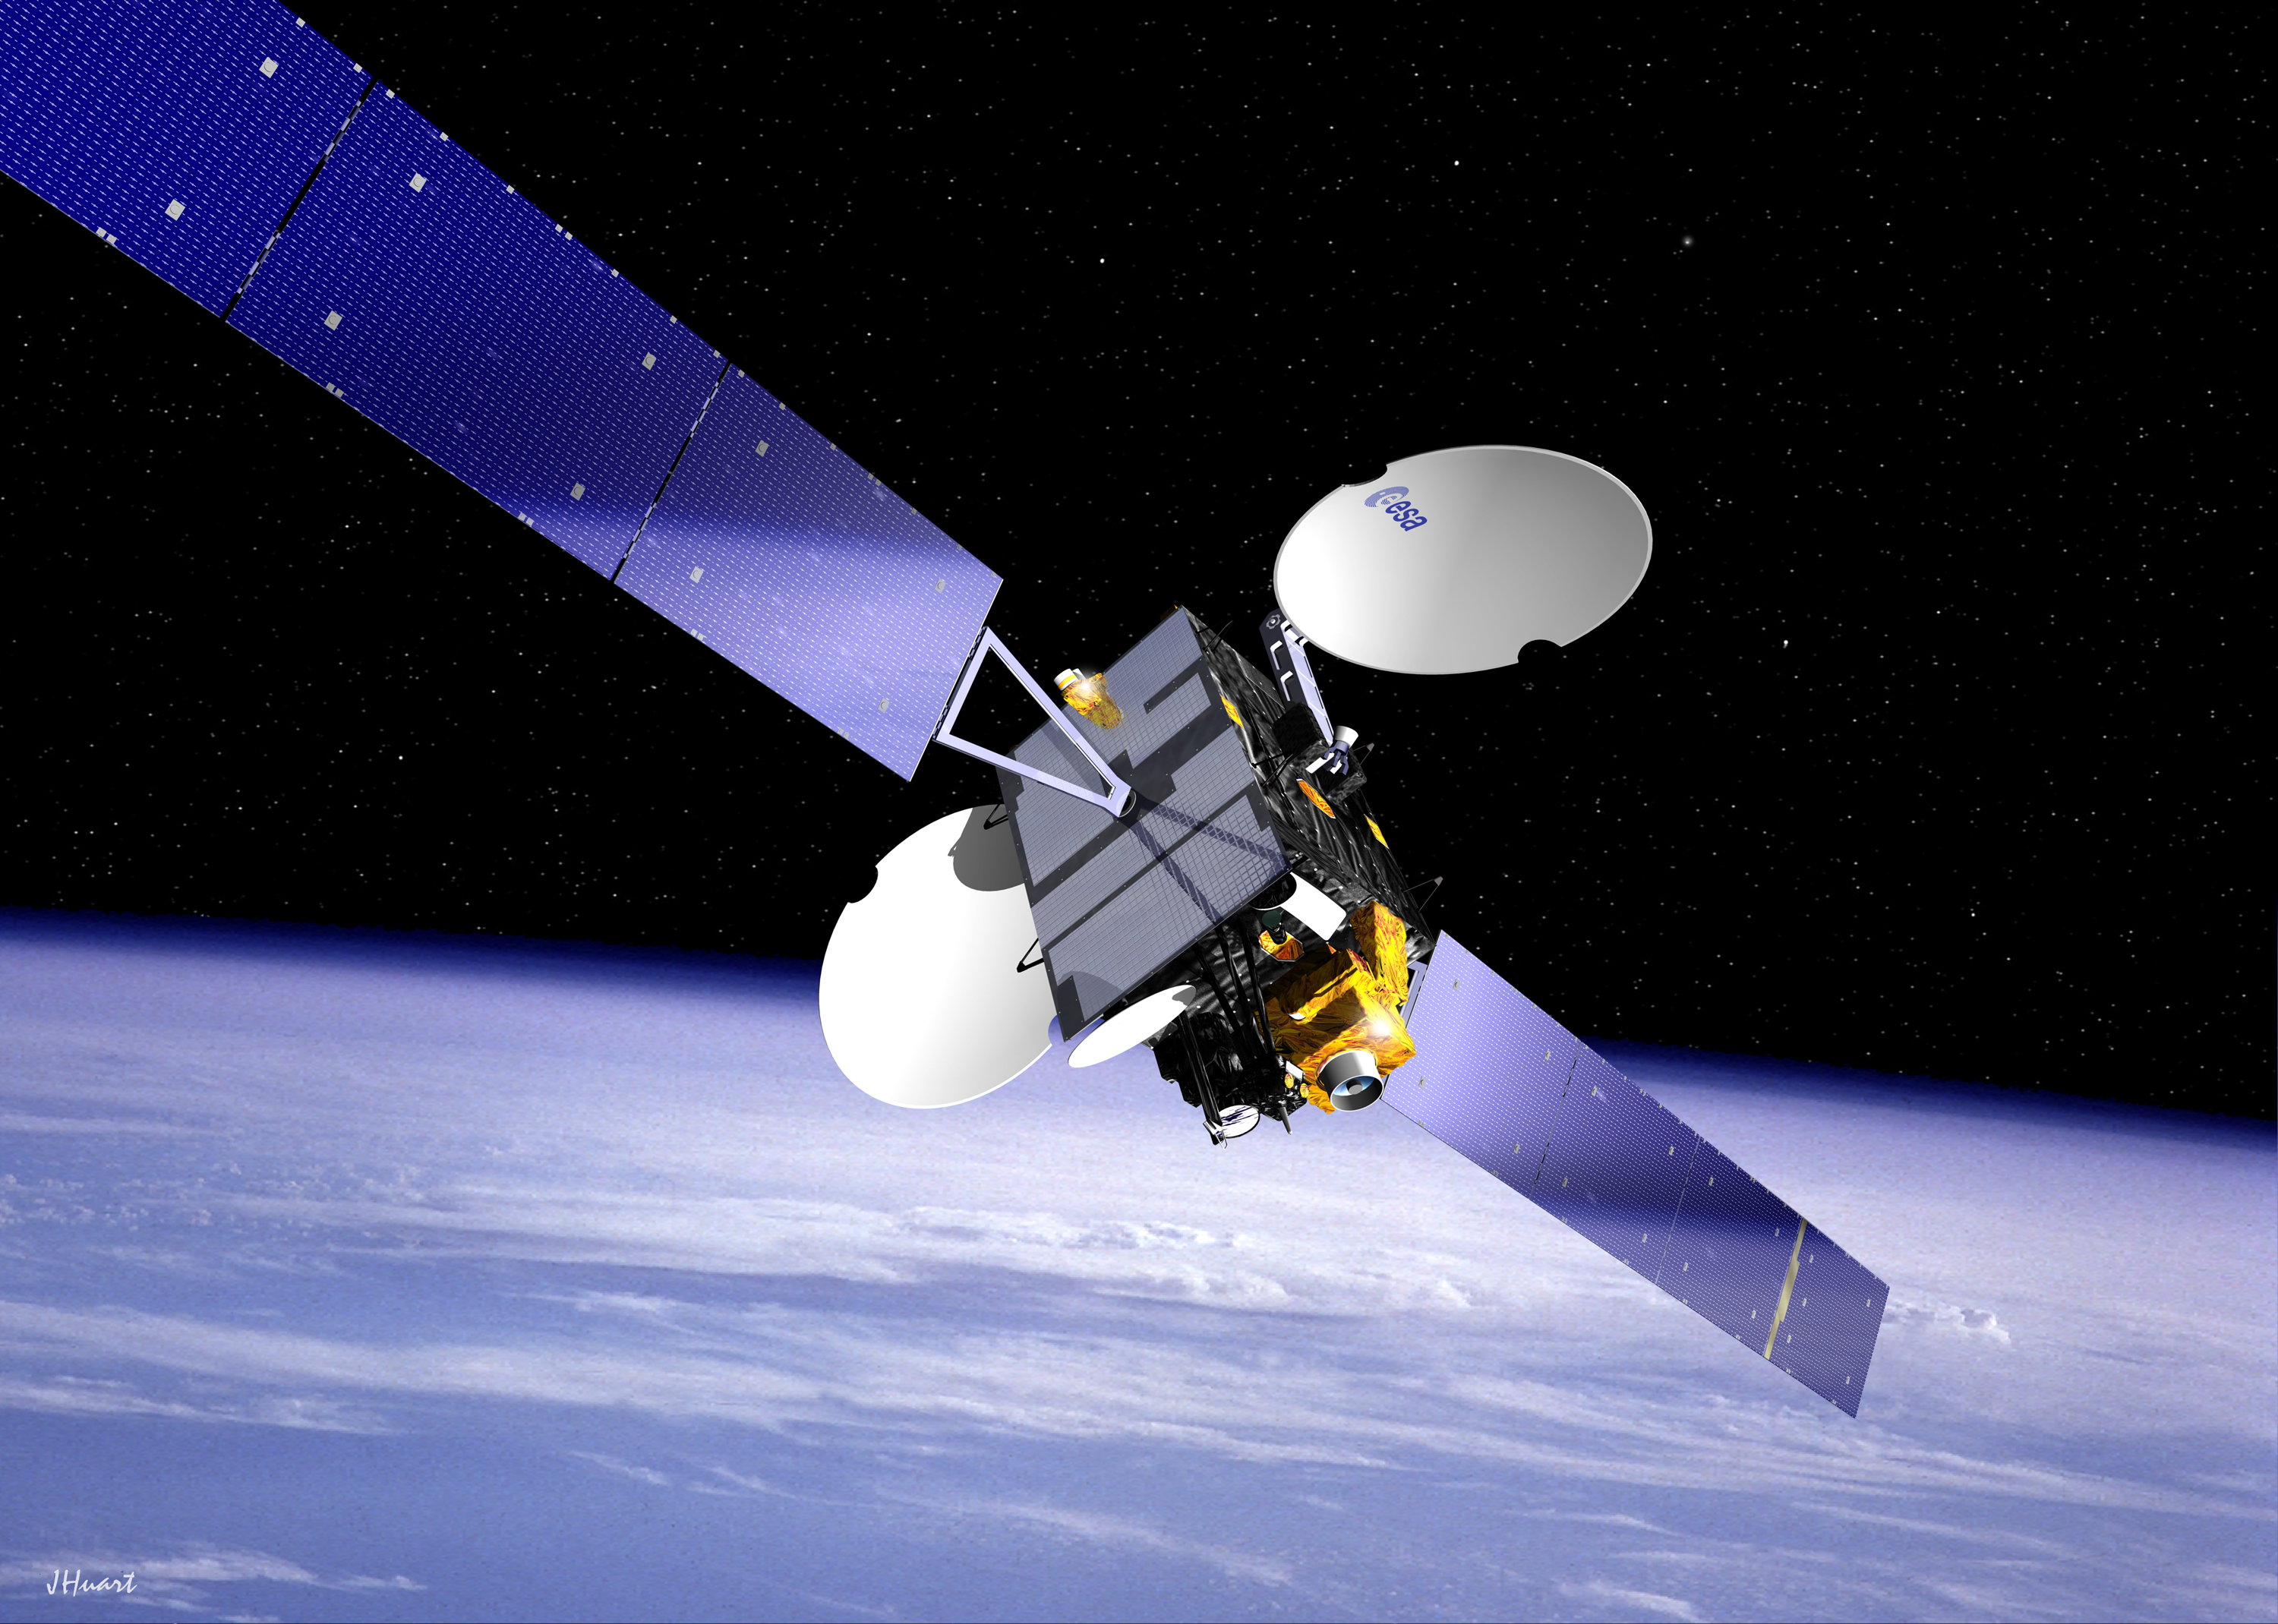 satellite communication The different characteristics, criteria for use, and advantages/disadvantages between cellular and satellite communications.